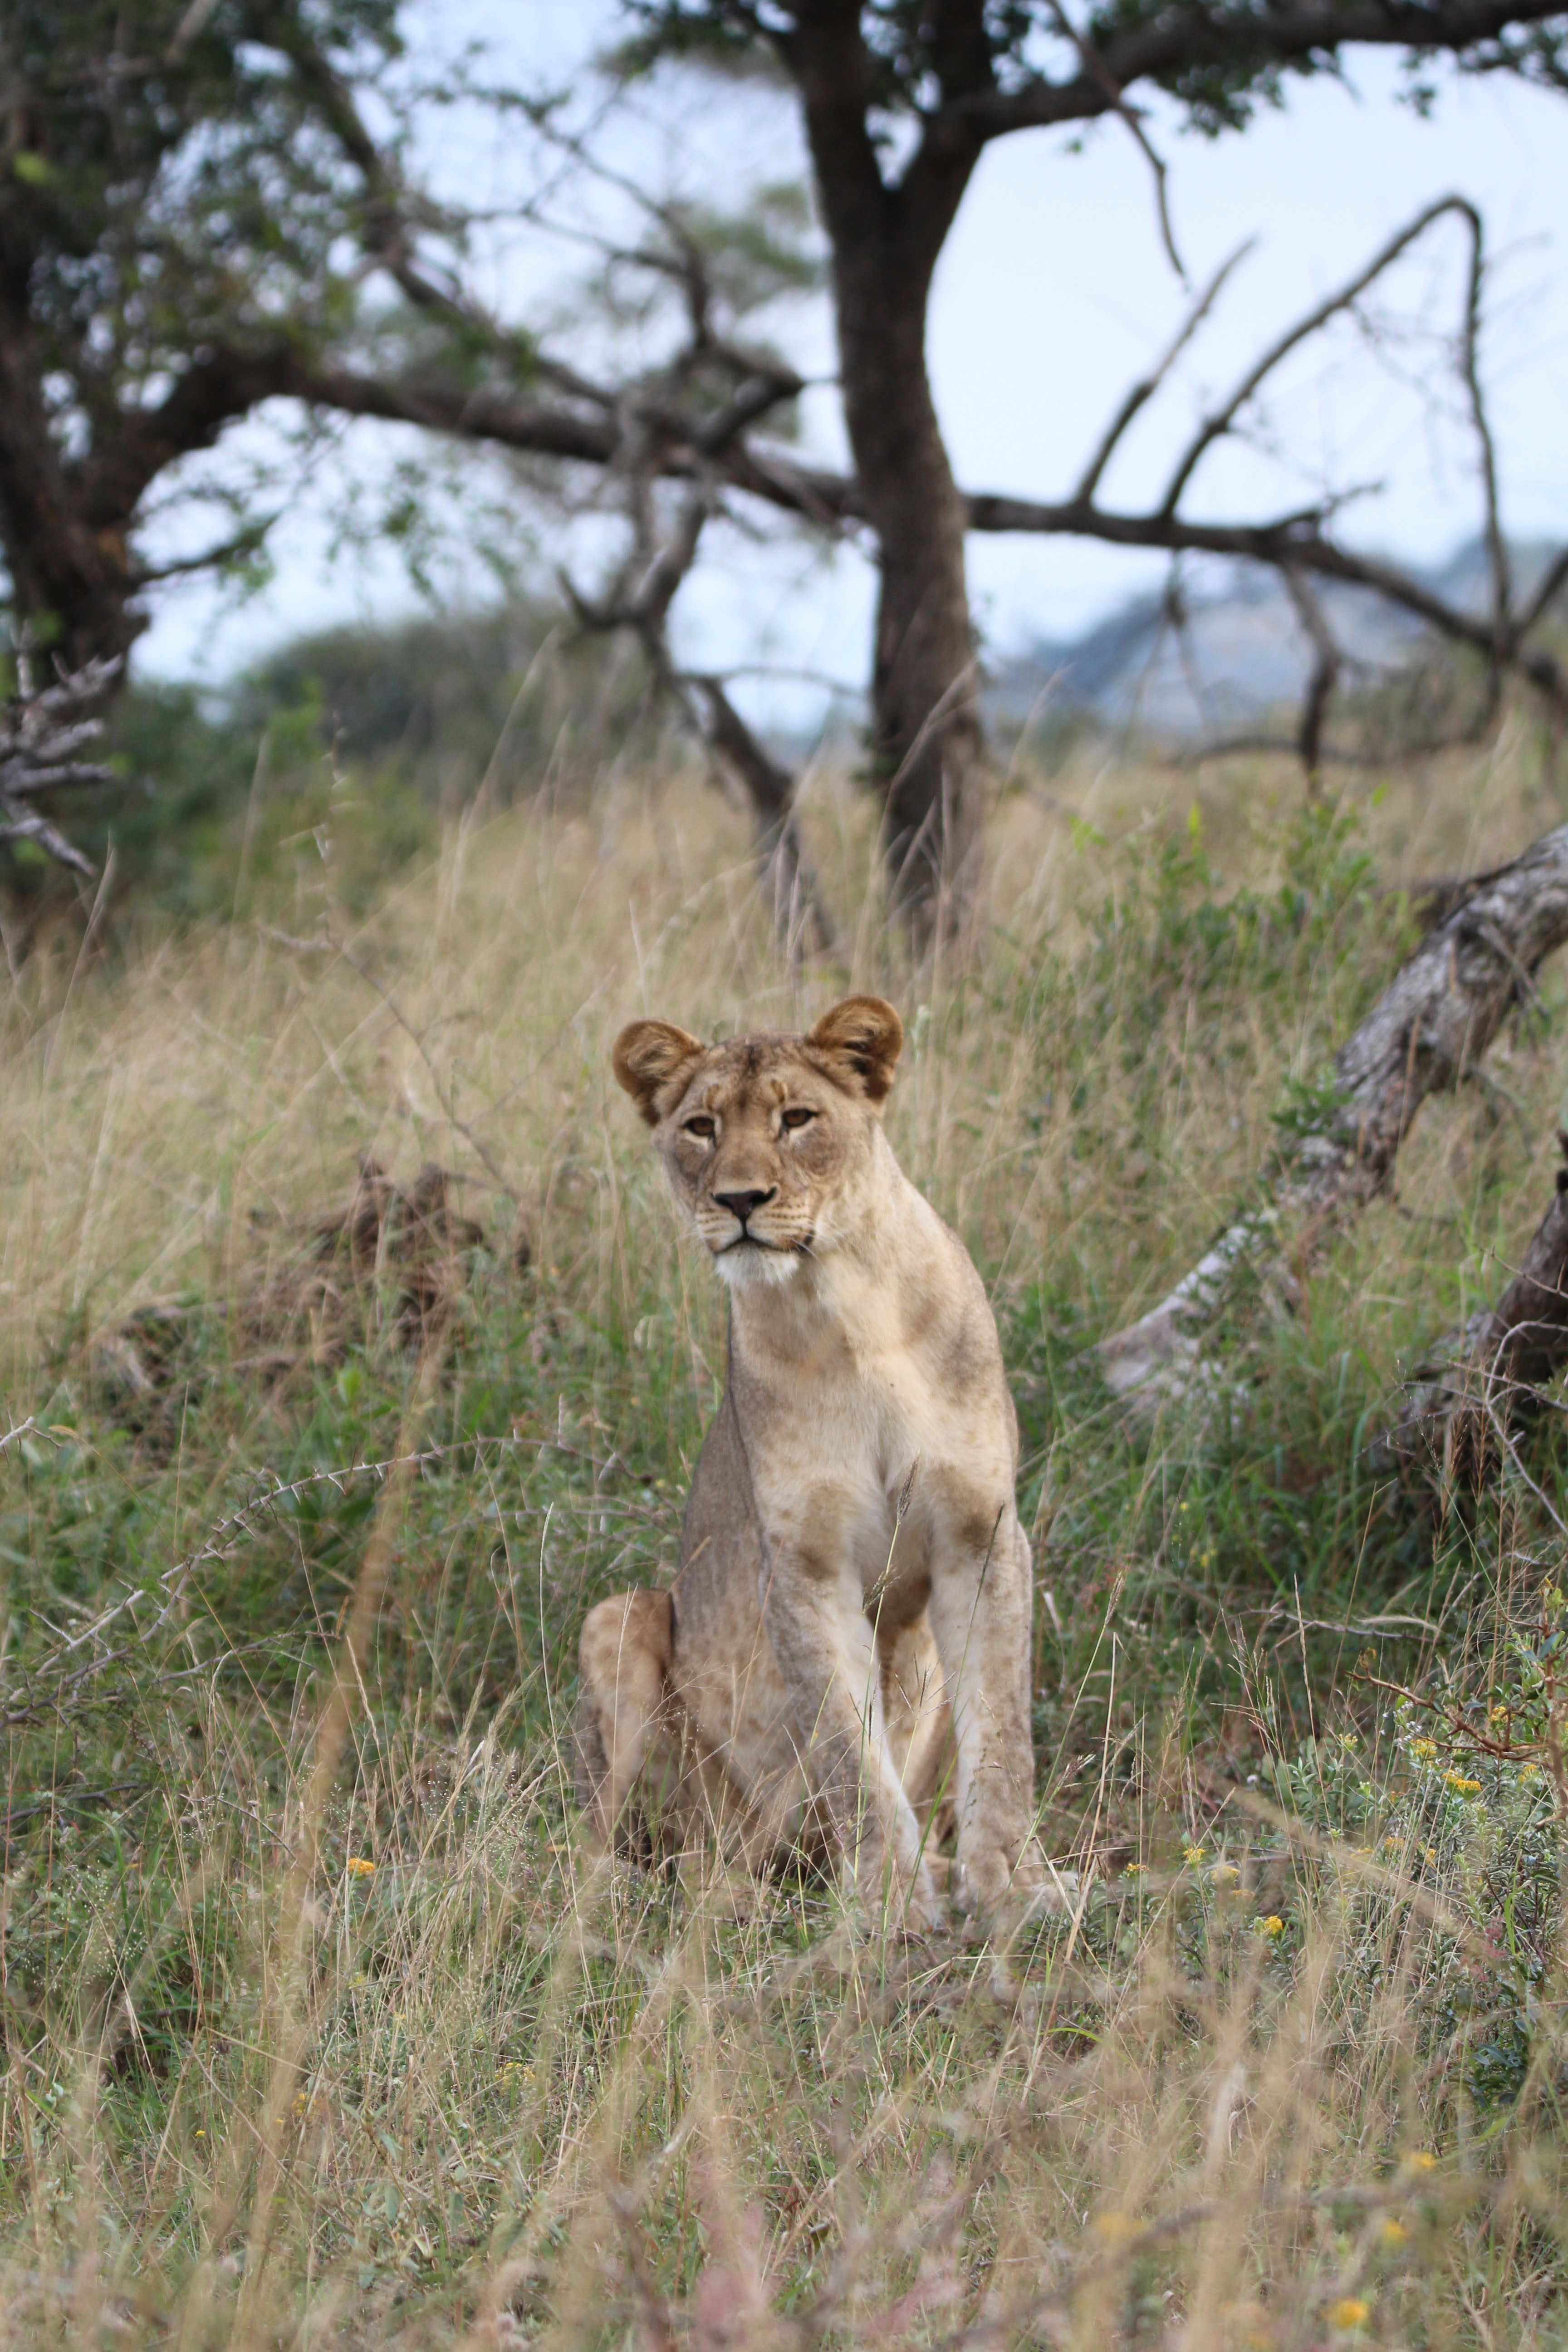 lioness sitting on grass near trees at daytime